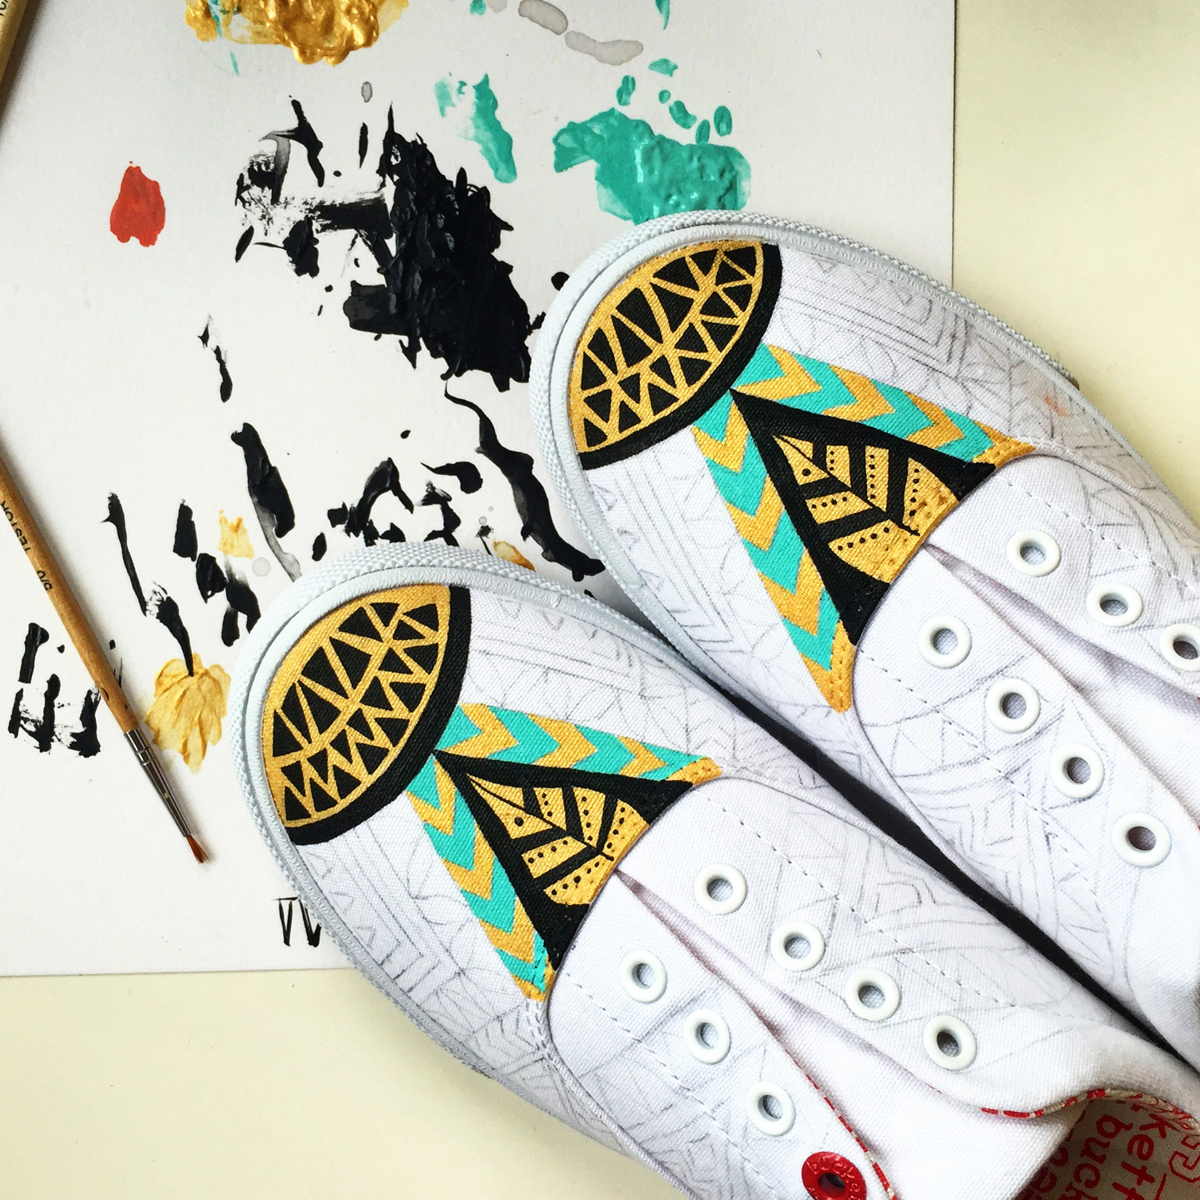 775e56ef758d95 My 2nd Custom Bucketfeet Shoes on Behance